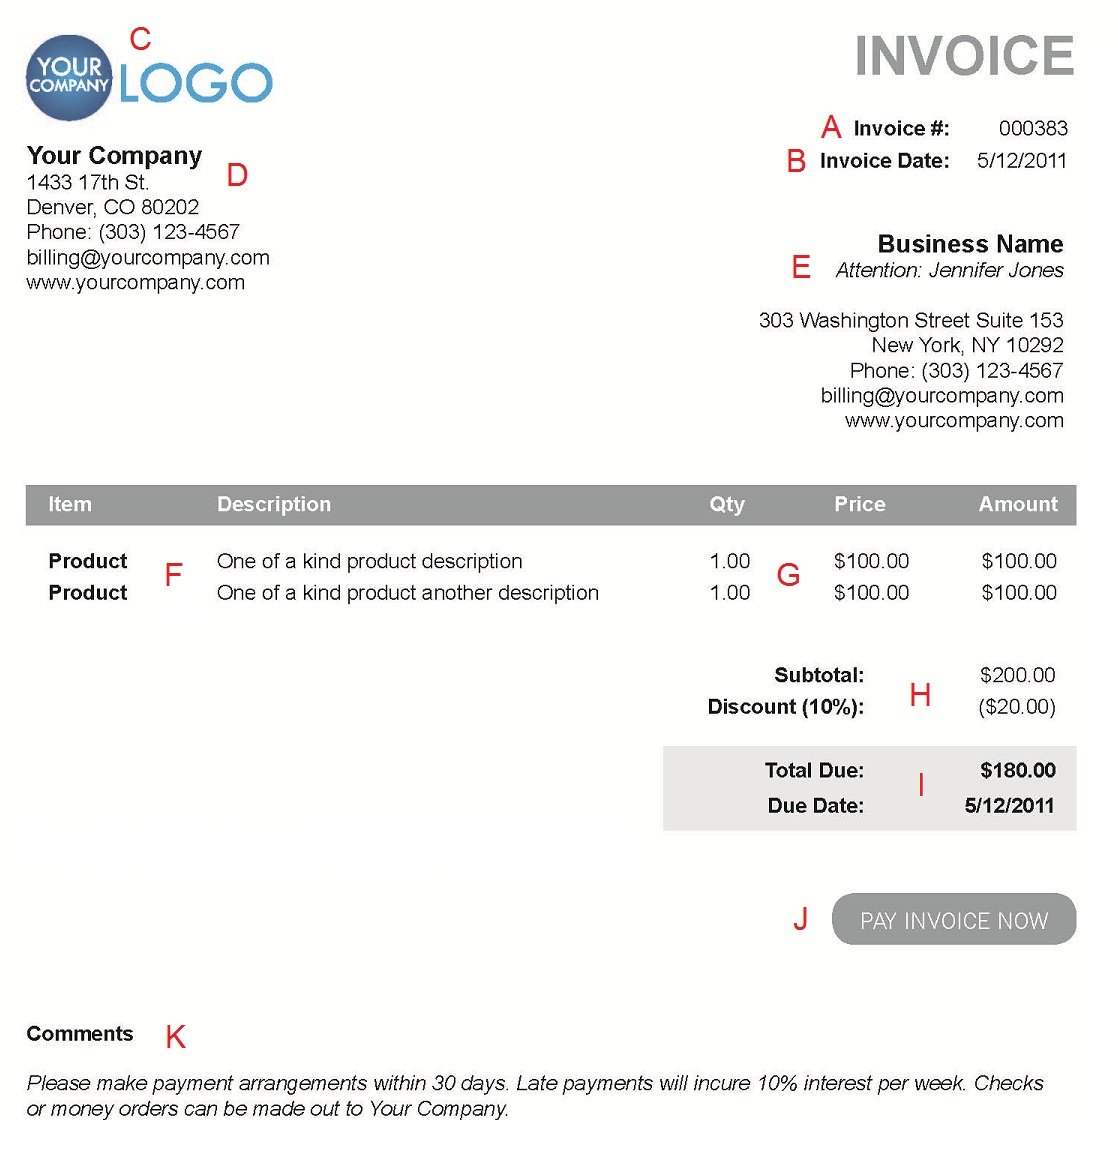 Gpwaus  Unique The  Different Sections Of An Electronic Payment Invoice With Hot A  With Awesome Invoice For Professional Services Also Simple Invoices Templates In Addition Immigrant Visa Processing Fee Invoice And Sample Auto Repair Invoice As Well As Invoice Price Toyota Highlander Additionally Word Templates For Invoices From Paysimplecom With Gpwaus  Hot The  Different Sections Of An Electronic Payment Invoice With Awesome A  And Unique Invoice For Professional Services Also Simple Invoices Templates In Addition Immigrant Visa Processing Fee Invoice From Paysimplecom